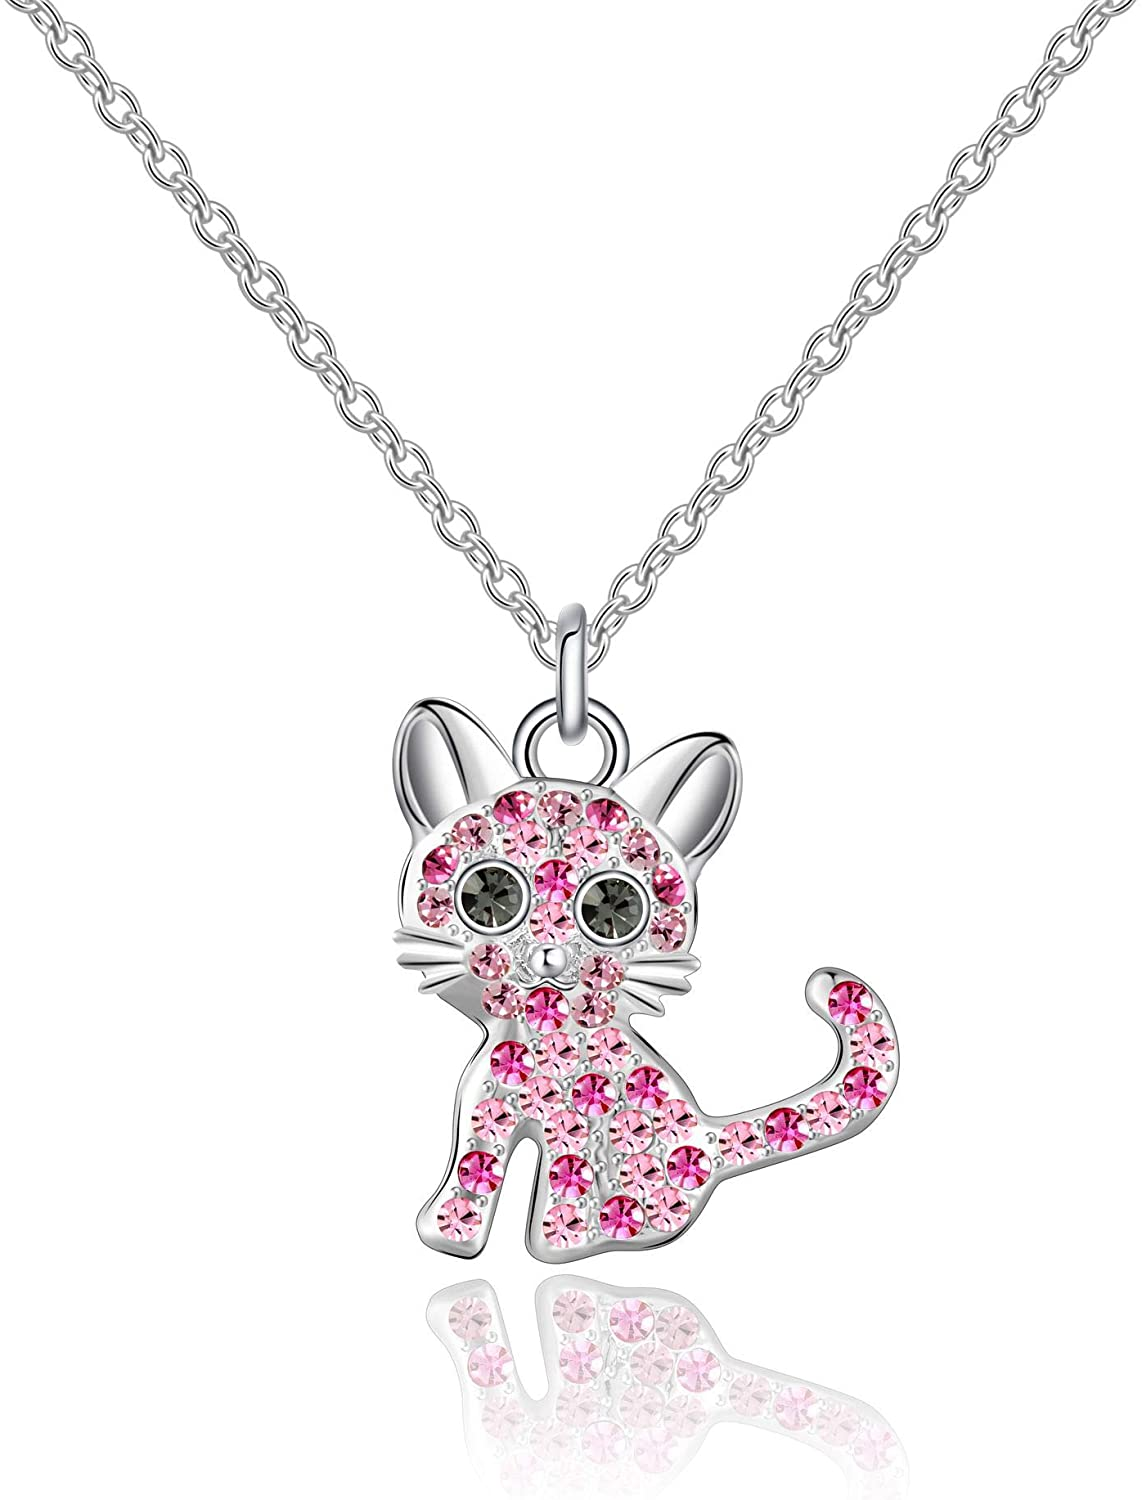 luomart Girls Cat Birthstone Necklaces,Silver Plated Kitty Pendant Jewelry Set Gifts for Kids Women